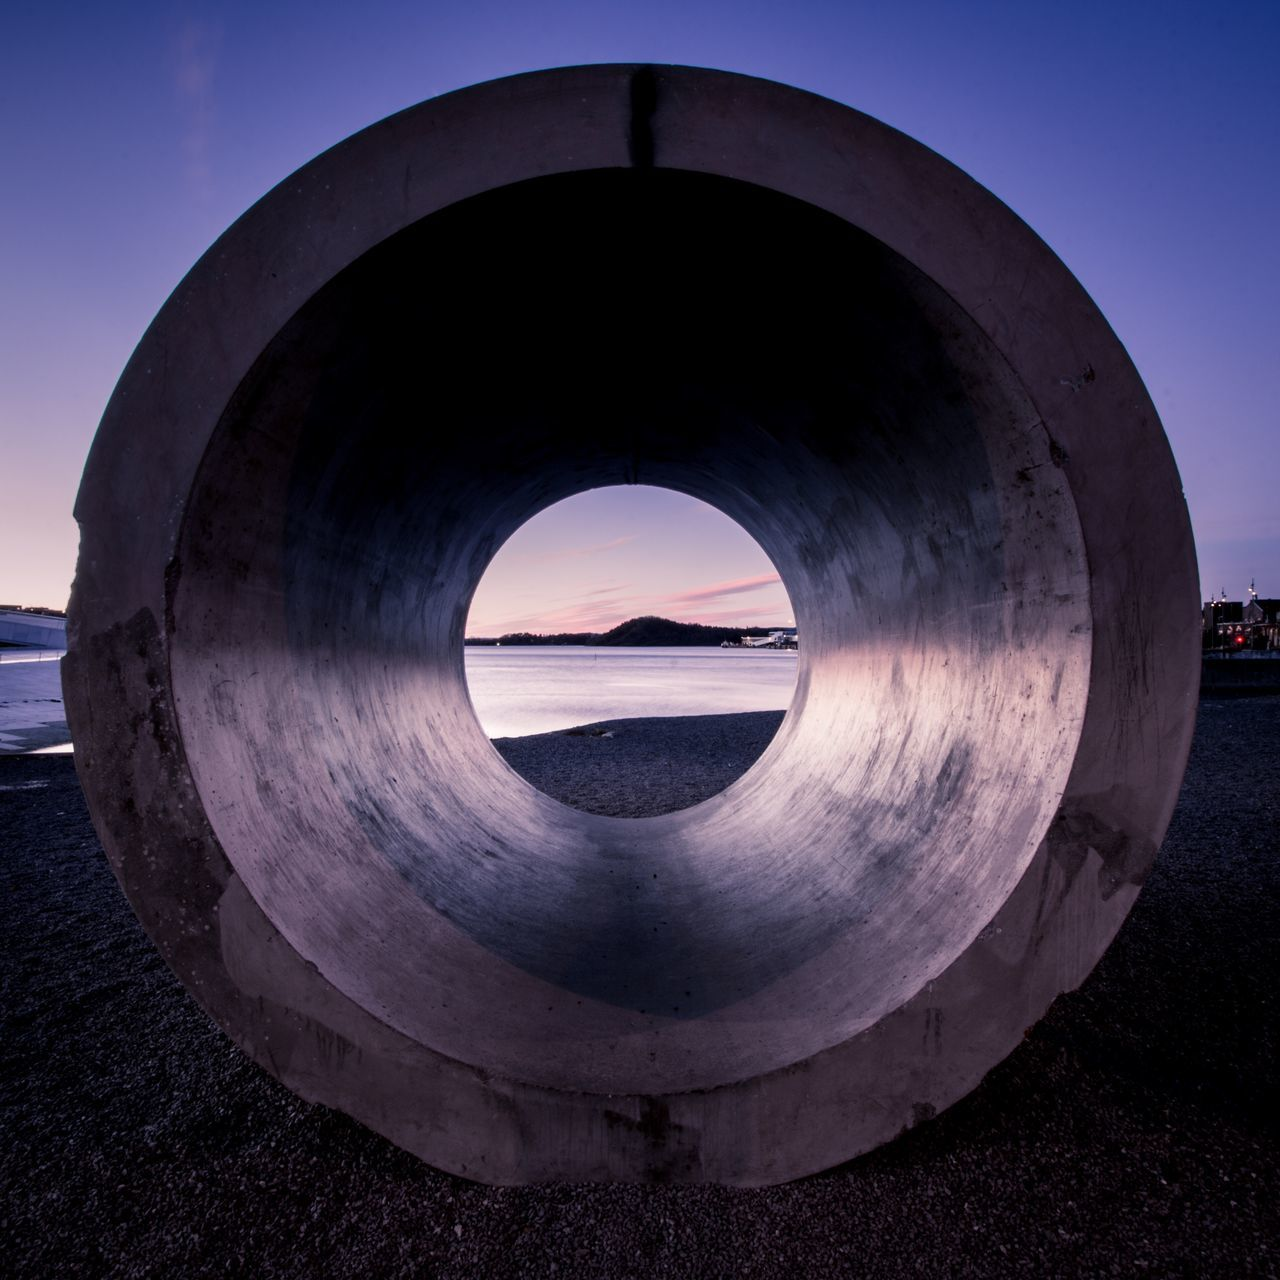 Pipe at beach against sky